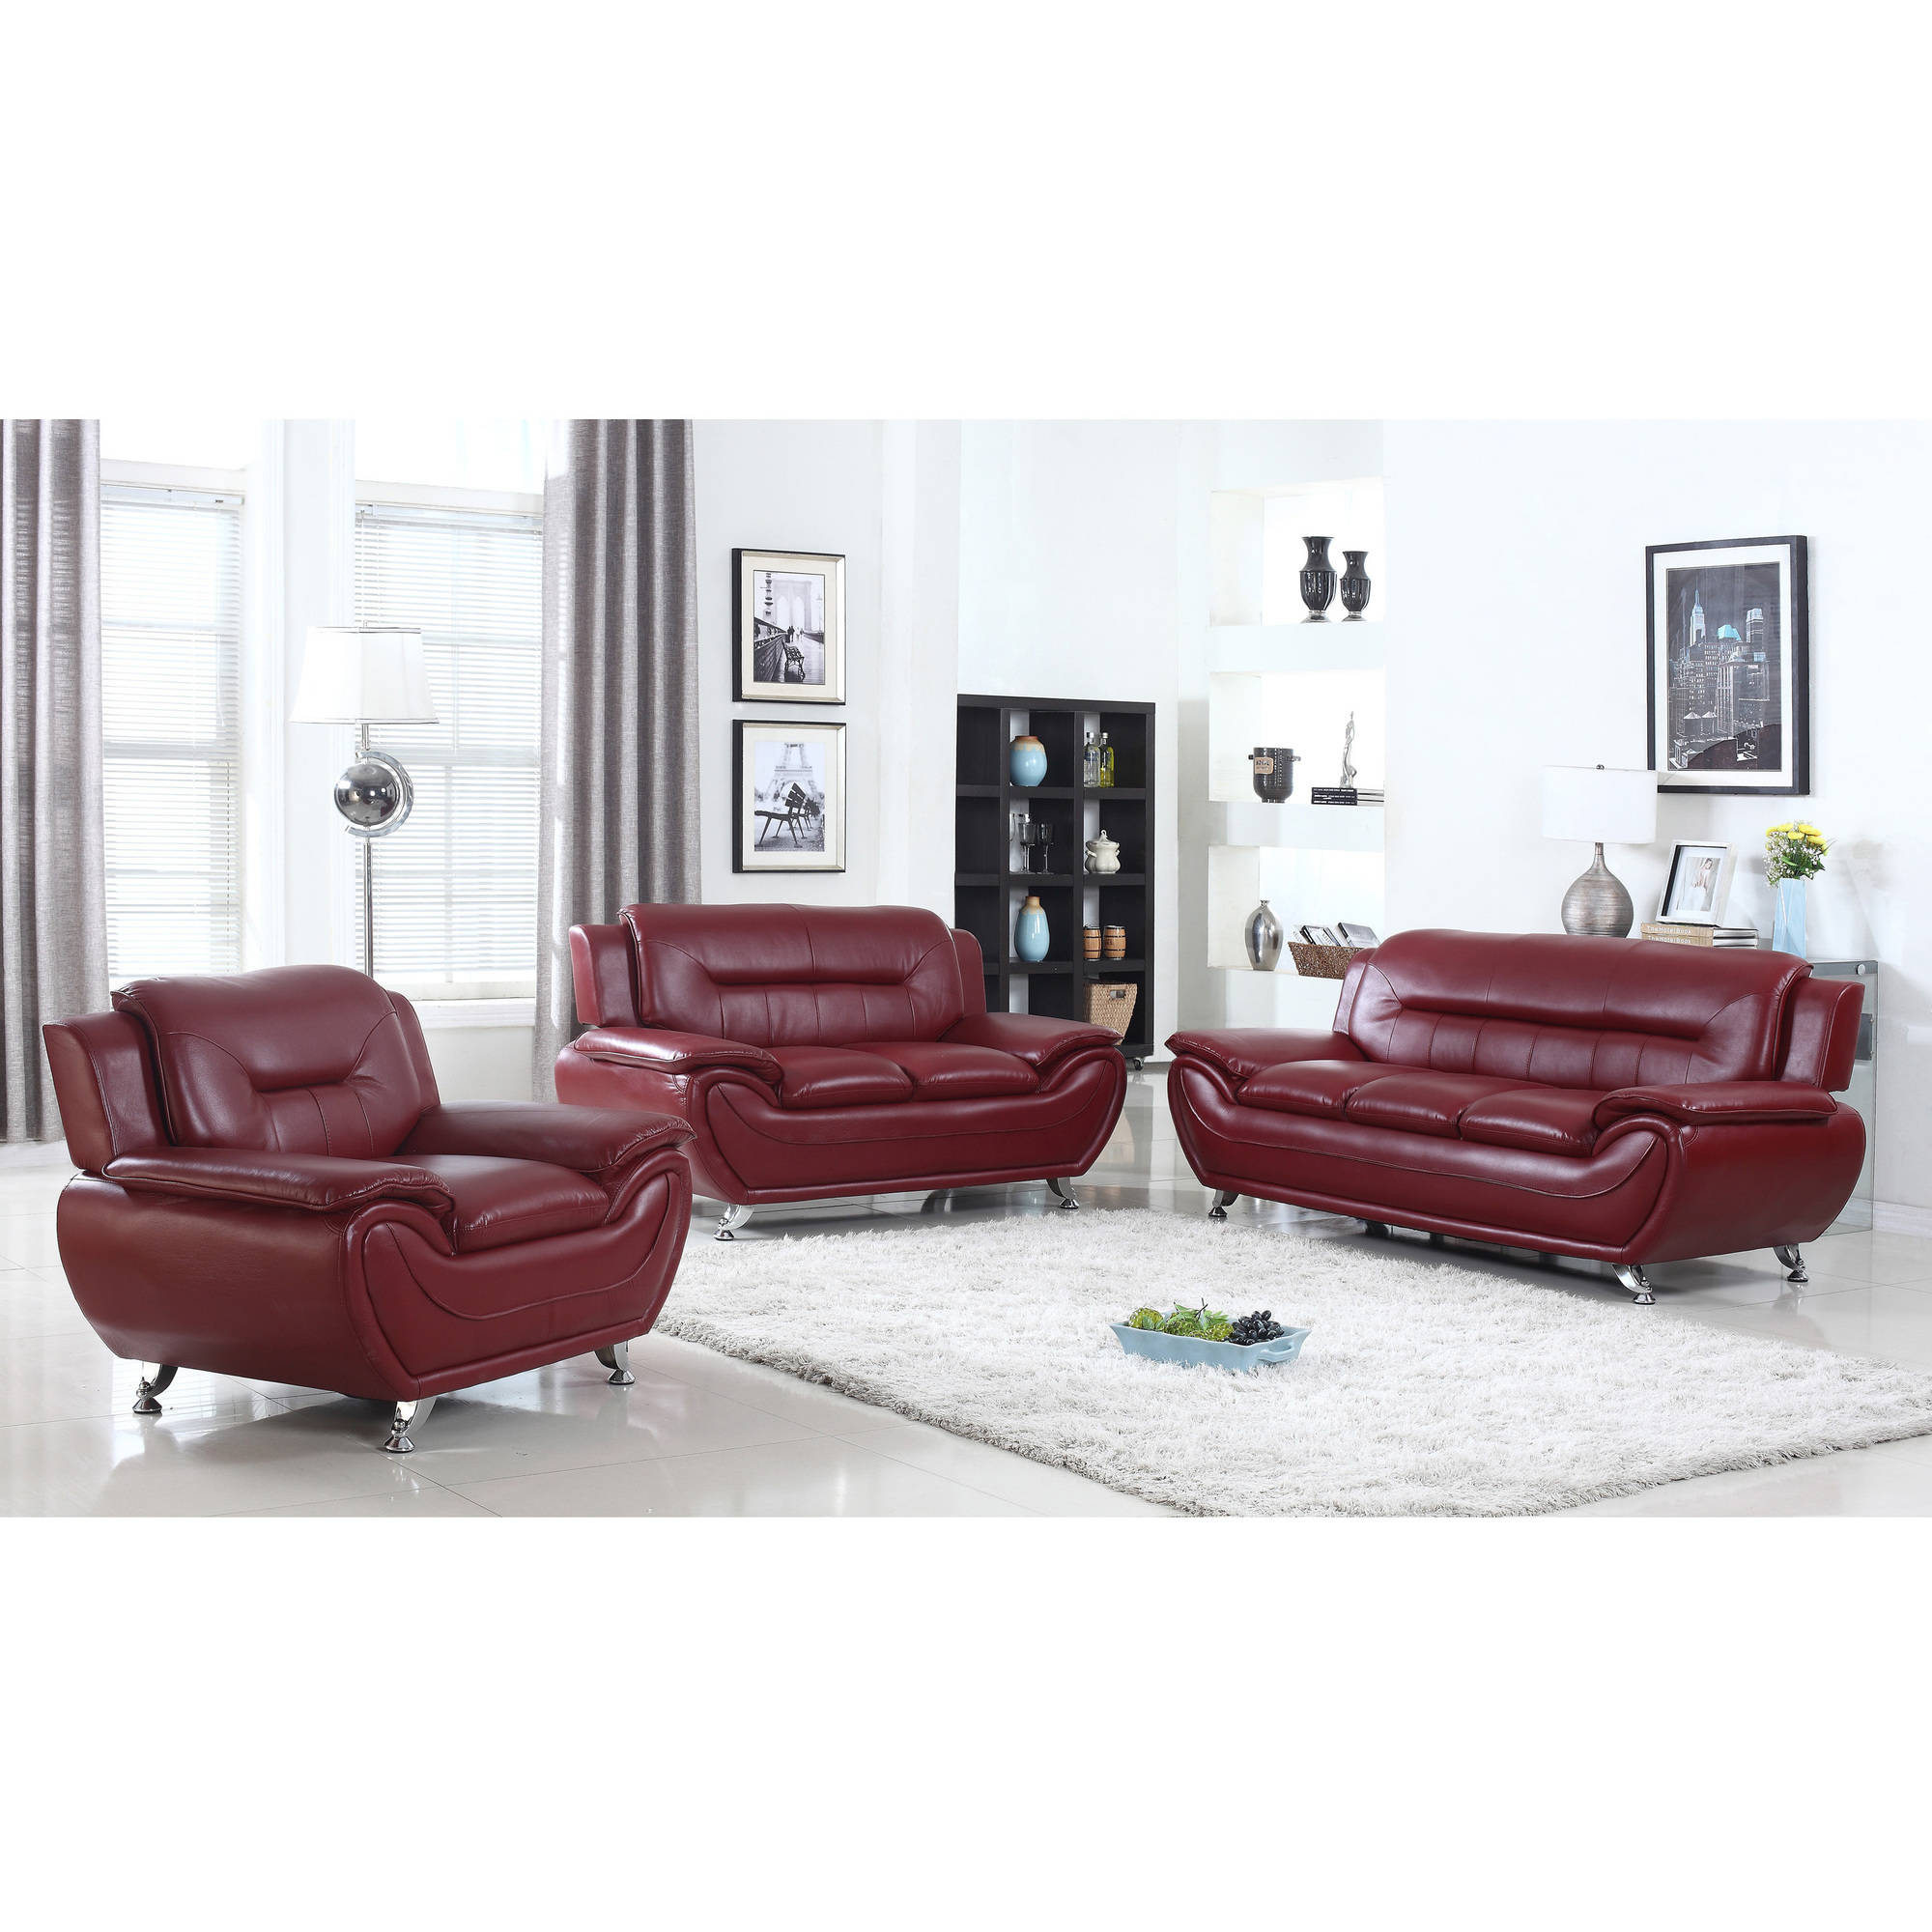 UFE Norton Burgundy Faux Leather 3-Piece Modern Living Room Sofa Set